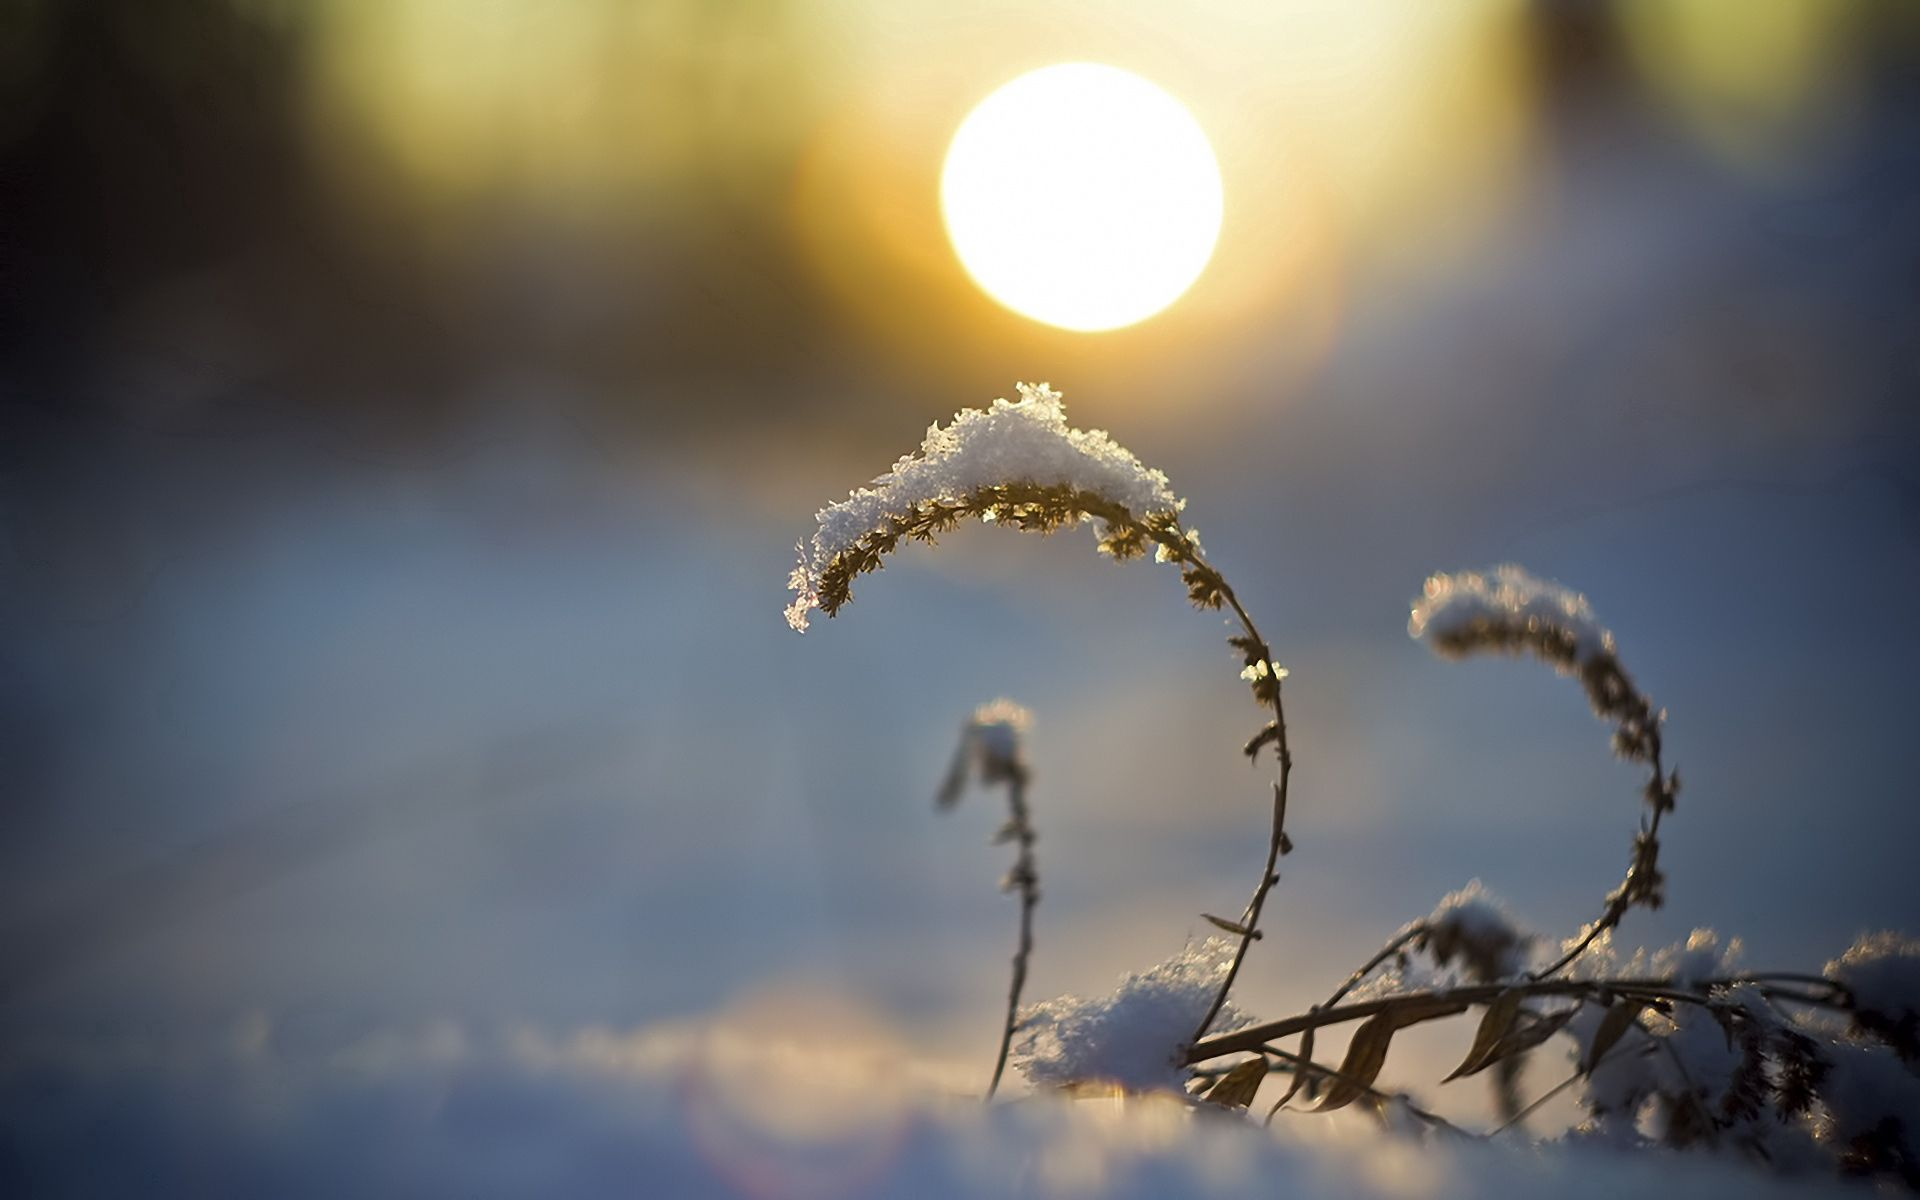 97293 download wallpaper Nature, Blade Of Grass, Blade, Snow, Sunset, Disk, Sun screensavers and pictures for free